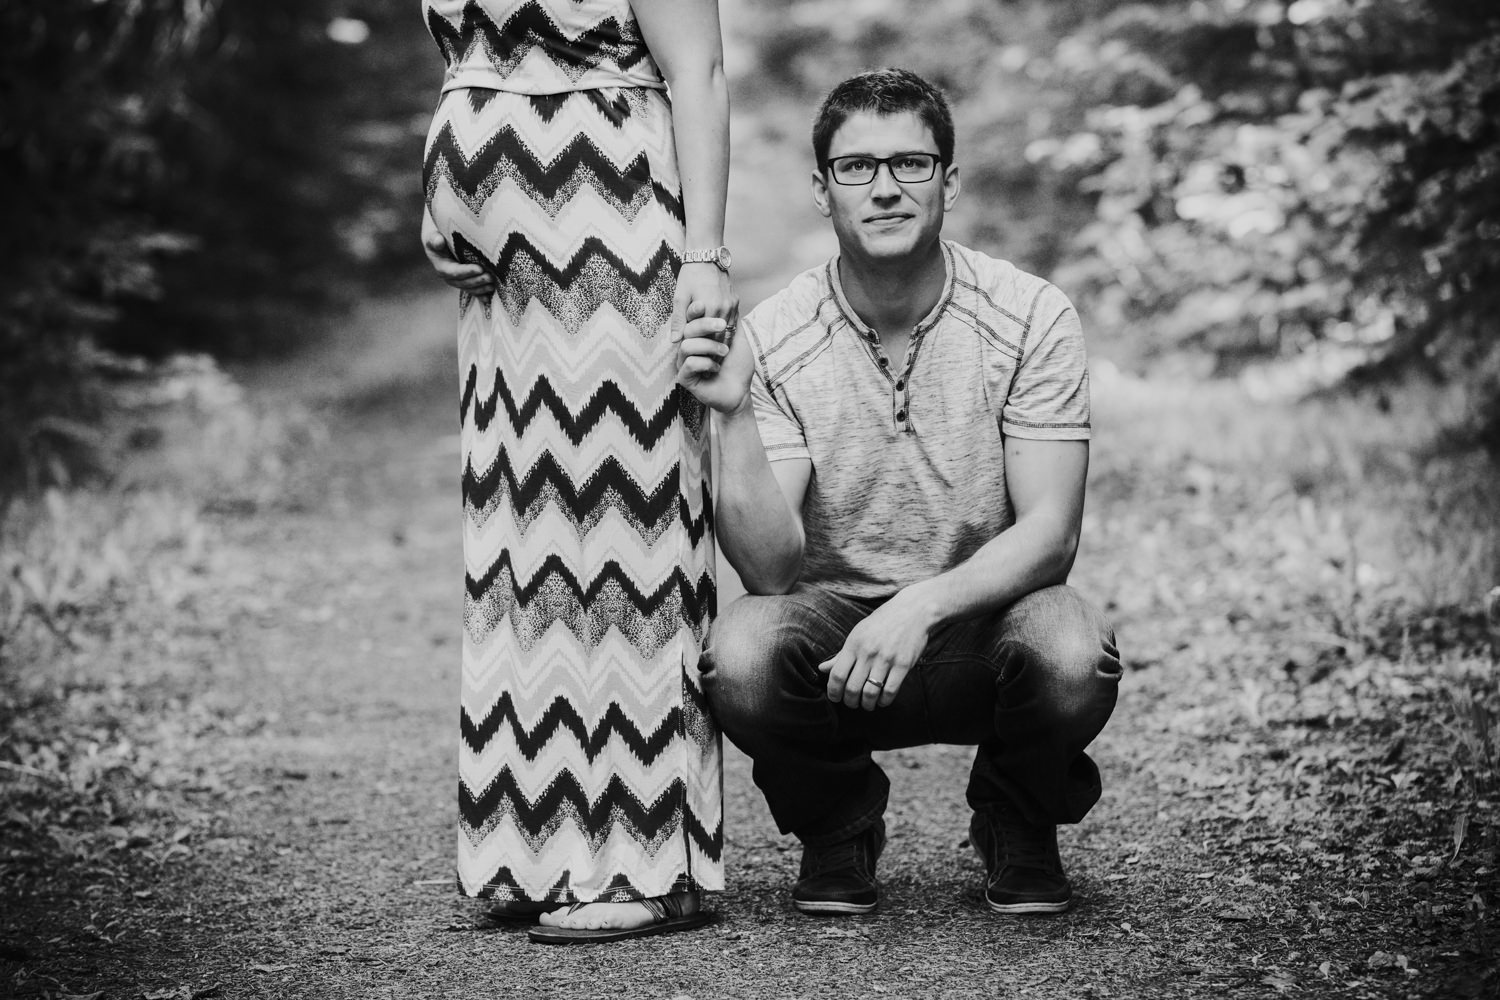 quesnel-bc-ten-mile-lake-maternity-session-quesnel-maternity-photographer-kelowna-maternity-photographers-okanagan-meternity-photographer (4 of 32).jpg